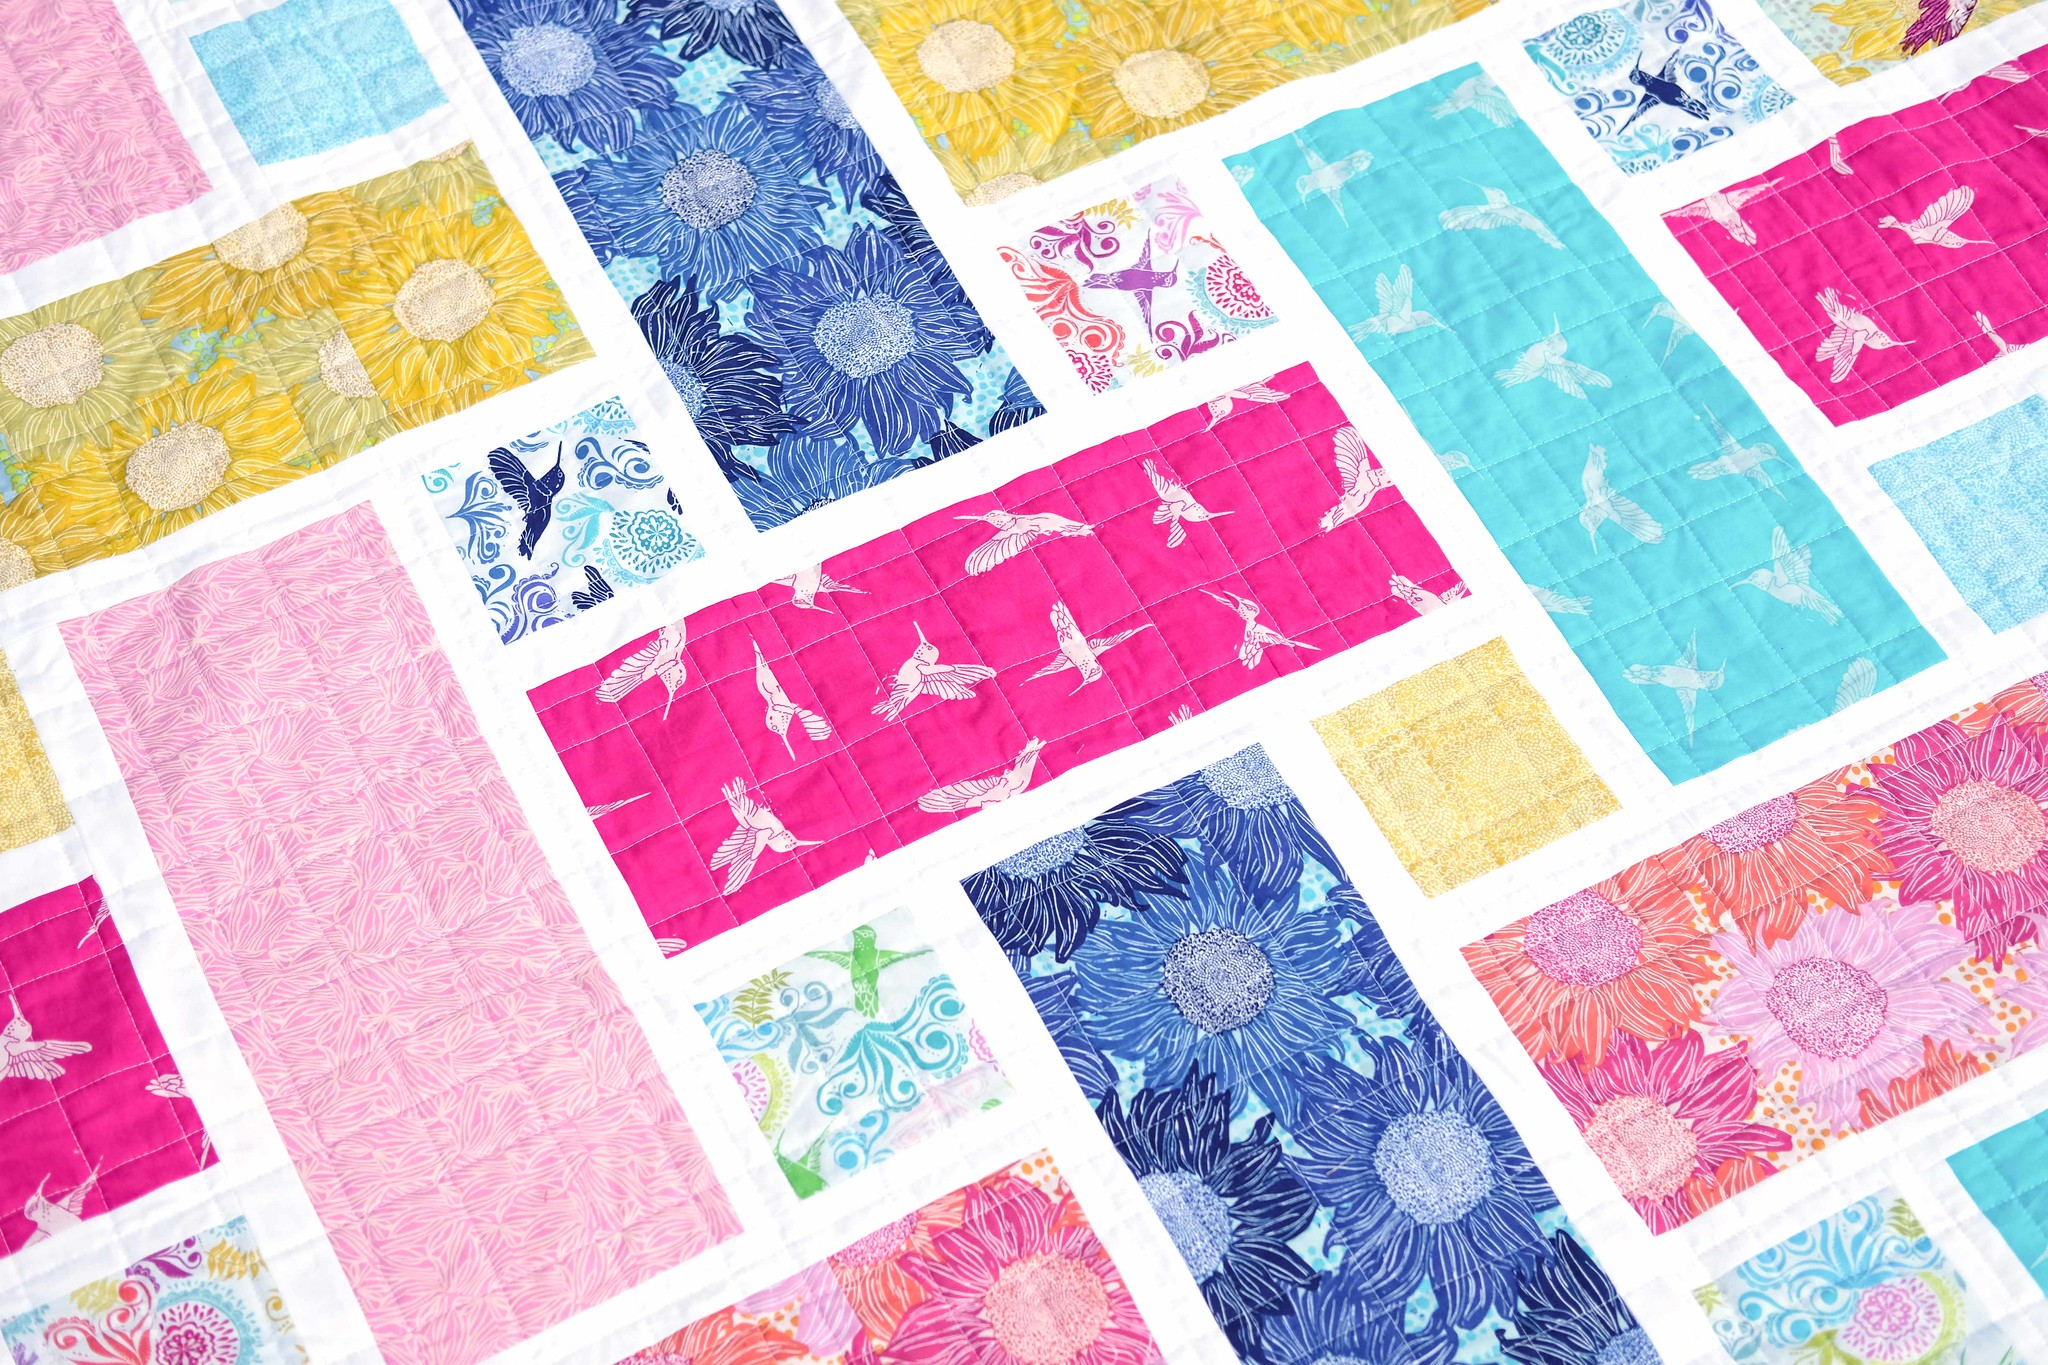 Murmur Quilt - The Tessa Quilt Pattern by Kitchen Table Quilting